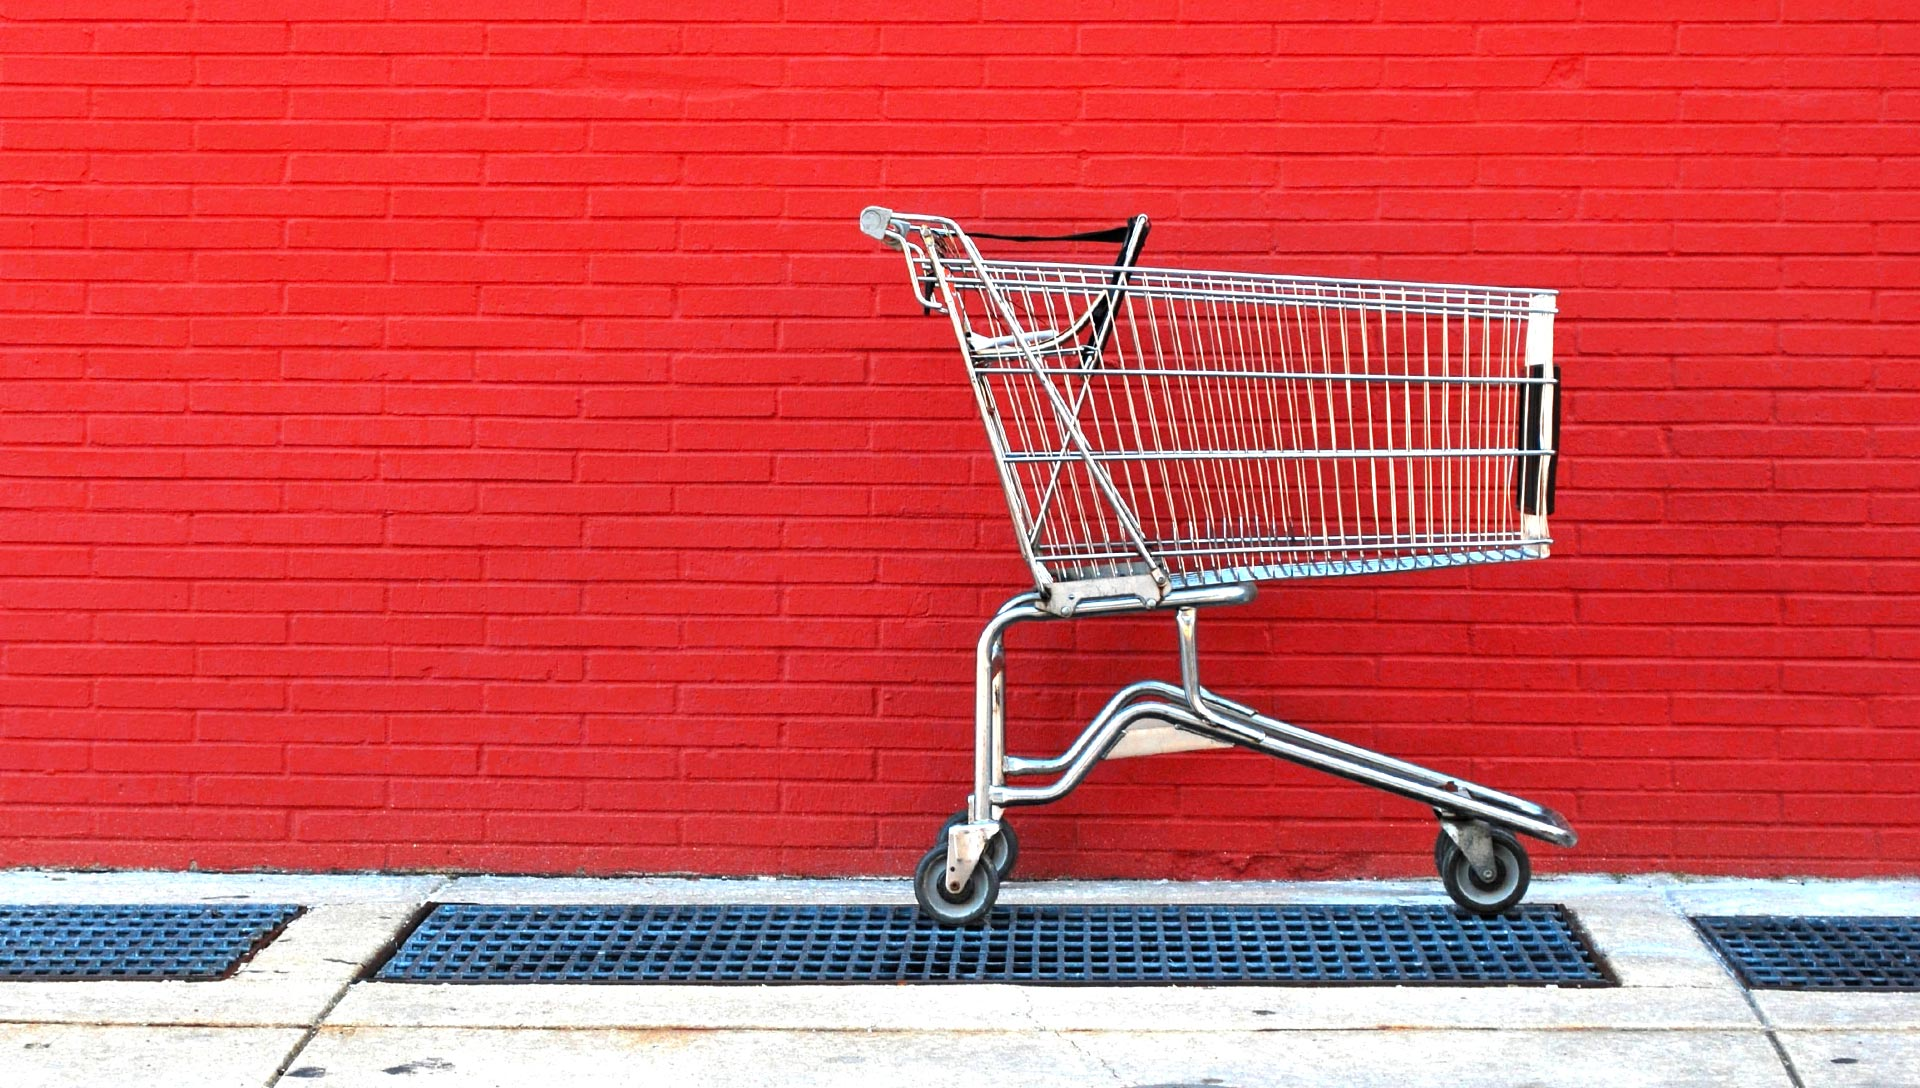 A person pushing a shopping cart